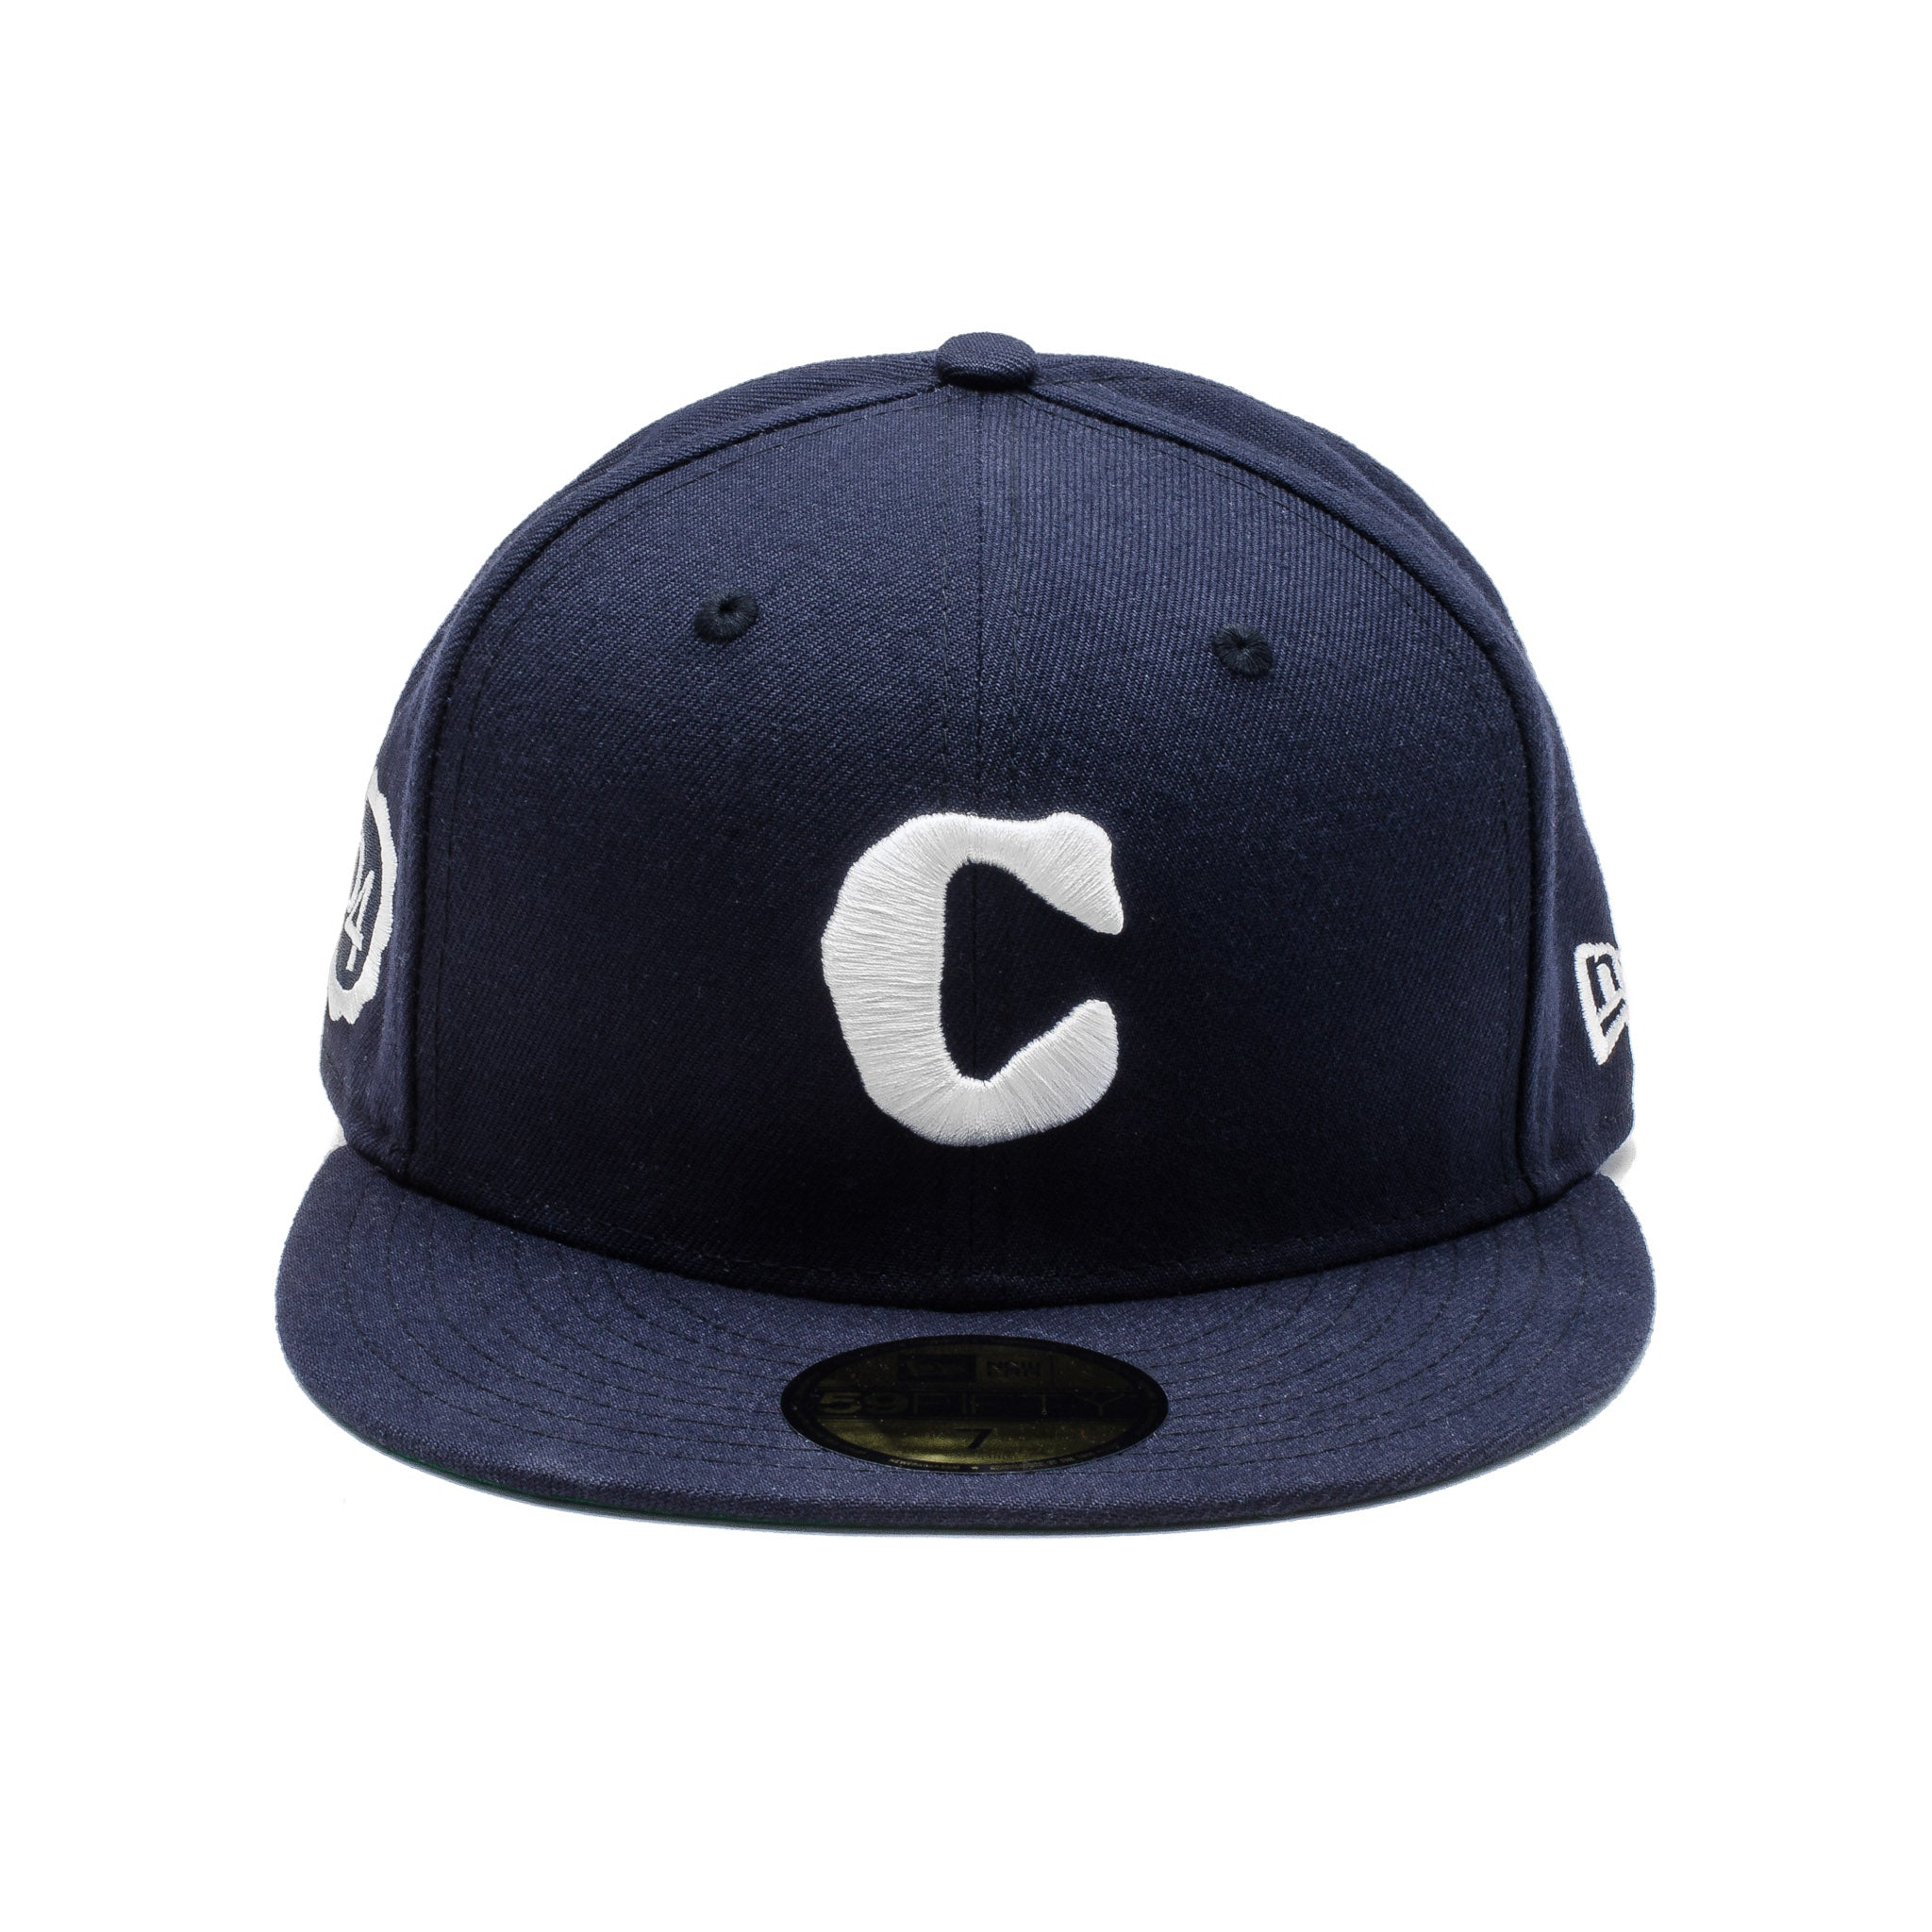 Capsule Casper Logo x New Era Fitted Cap Navy